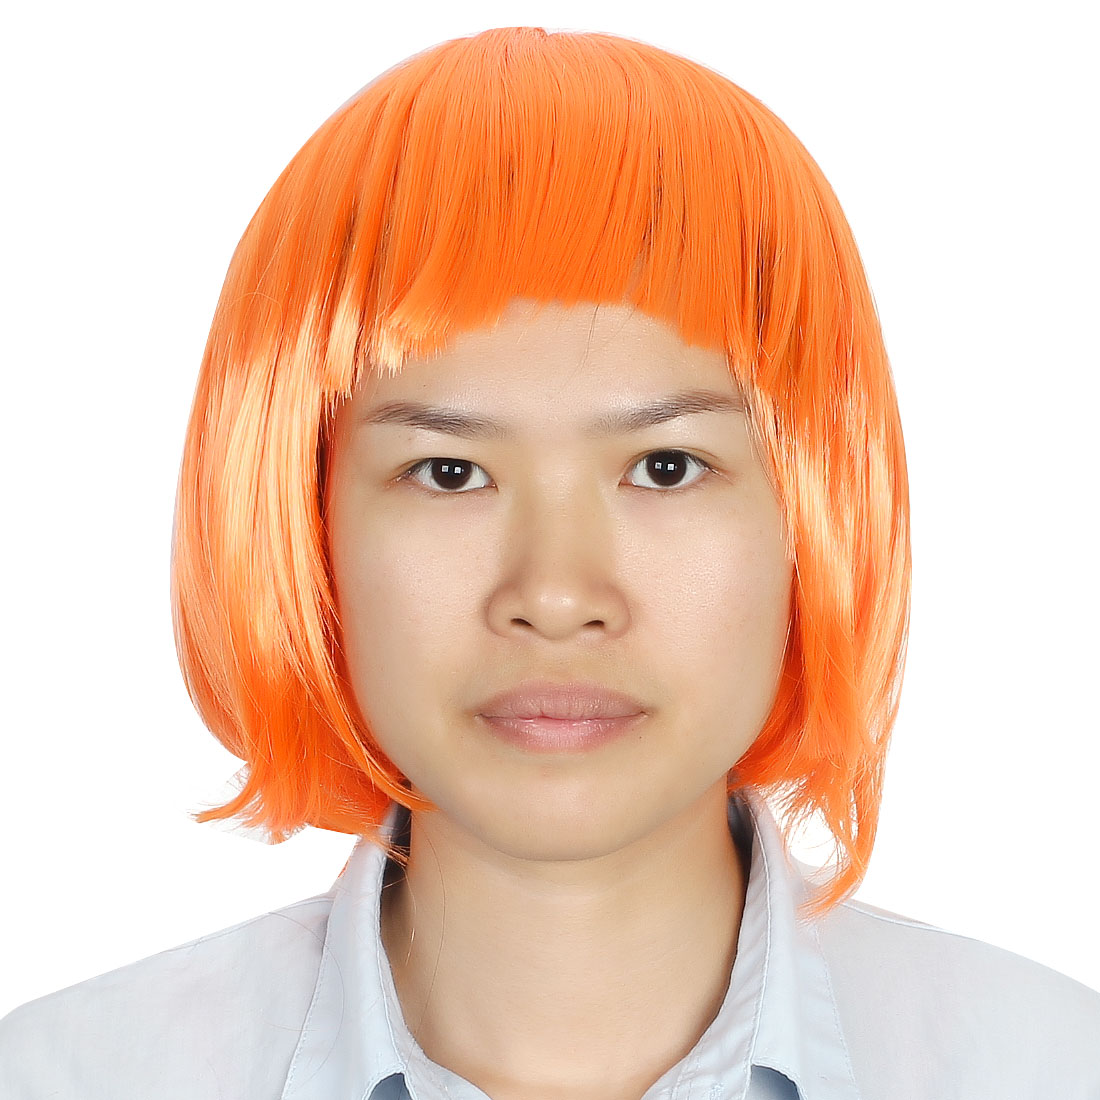 Ladies Woman Short Cut Straight Hairpiece Flat Bangs Hair Play Costume Full Wig Party Orange